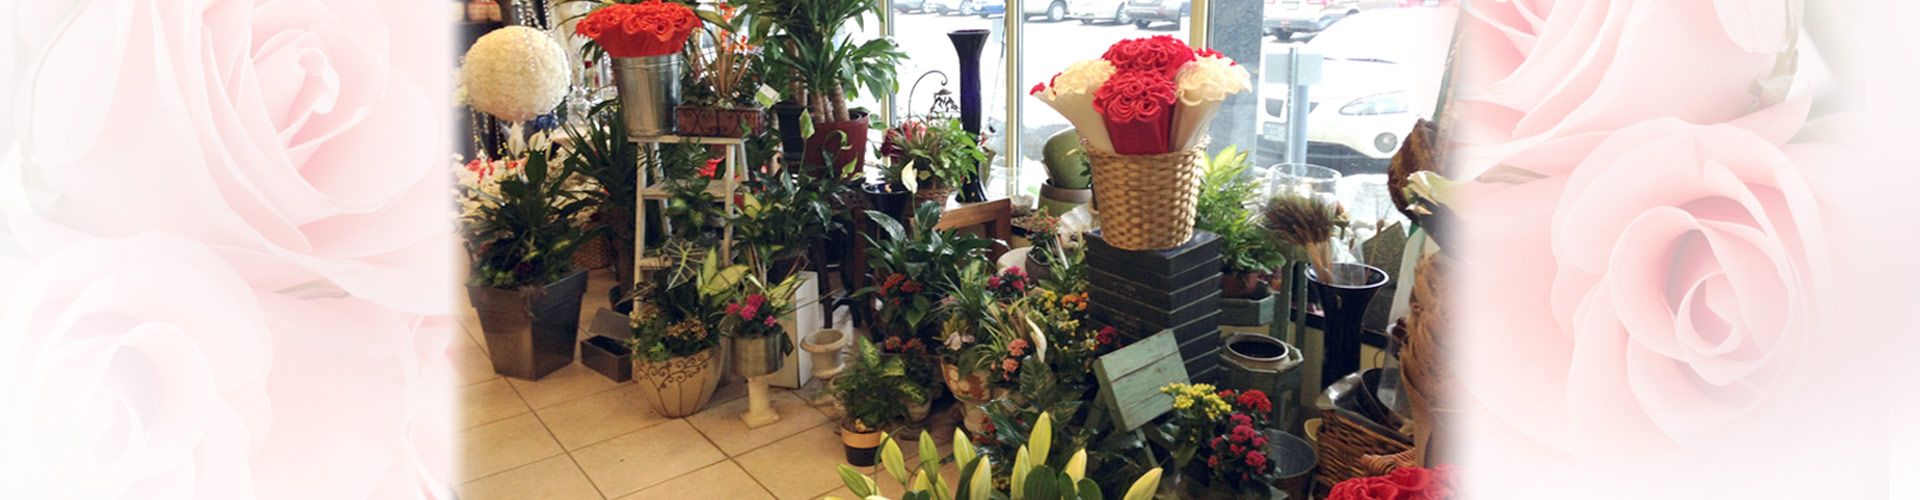 Store interior with flower displays